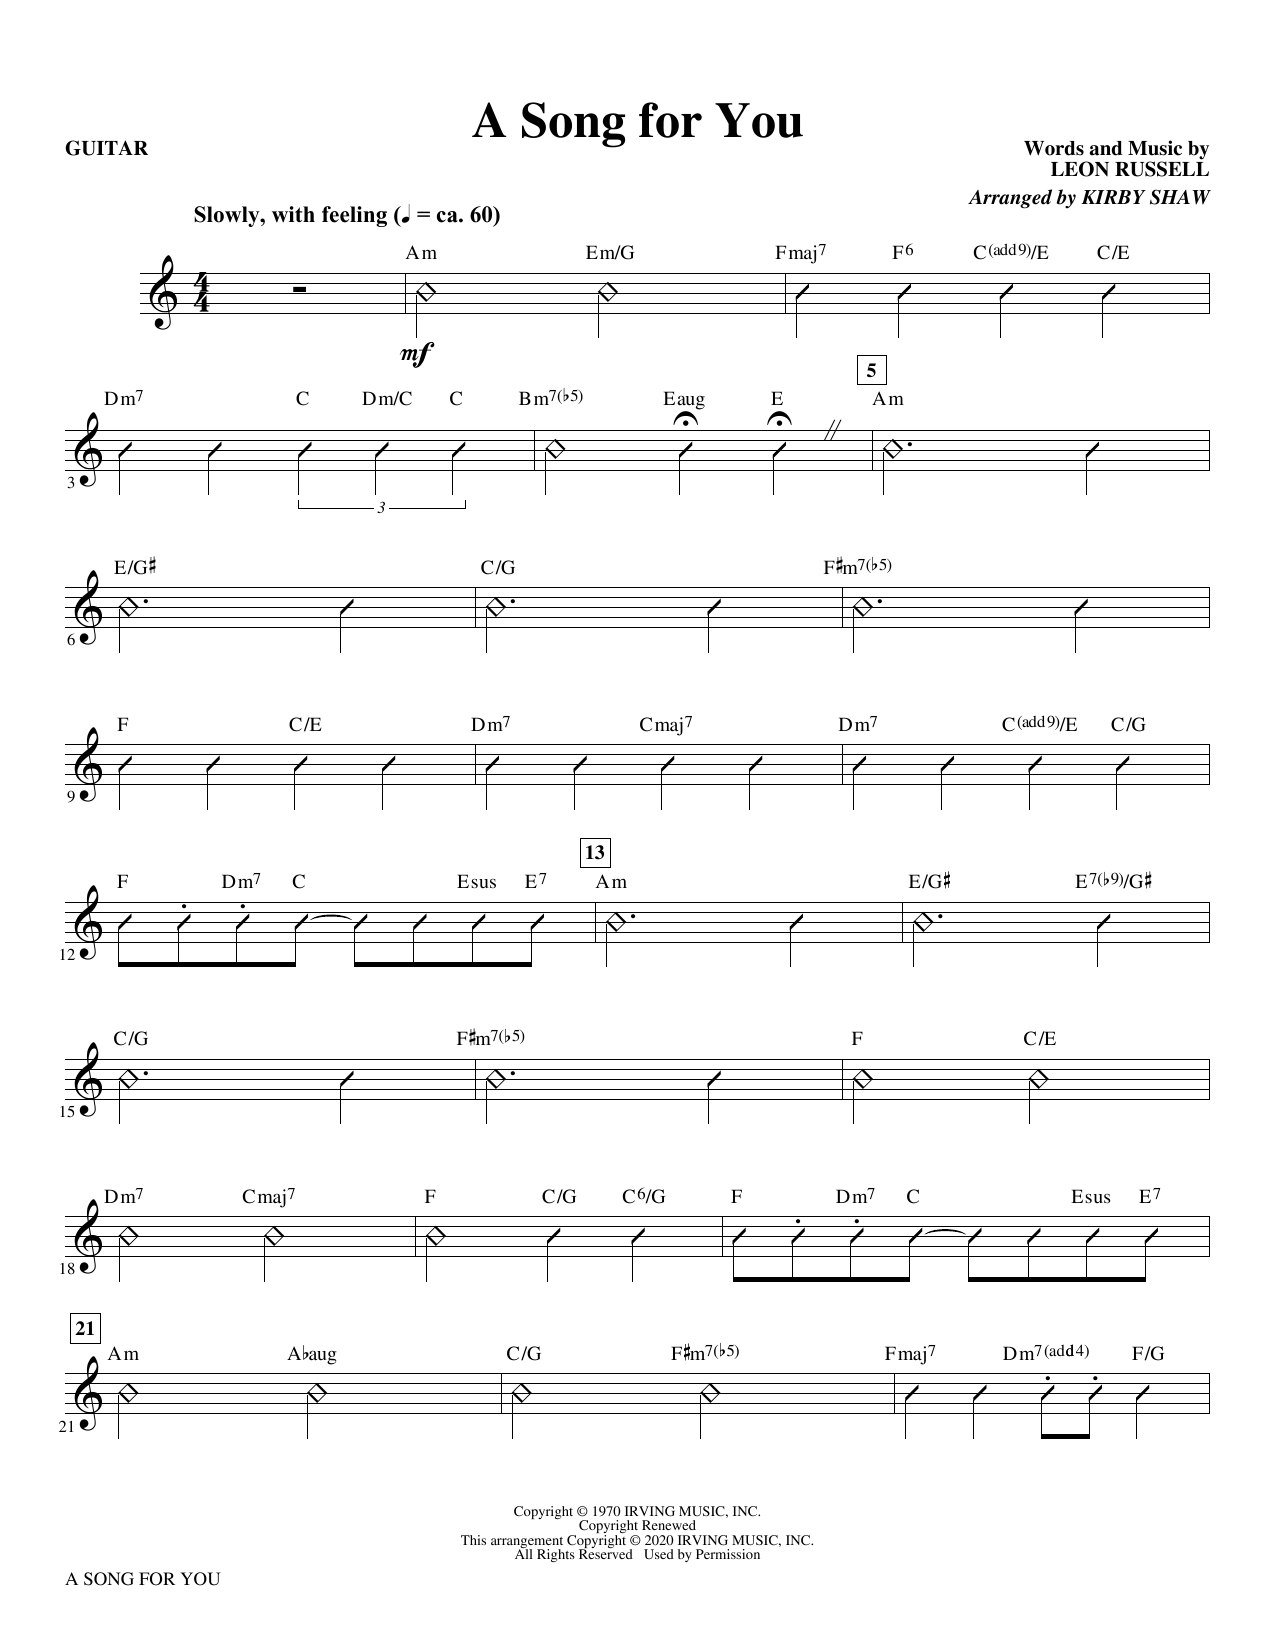 A Song for You (arr. Kirby Shaw) - Guitar Sheet Music